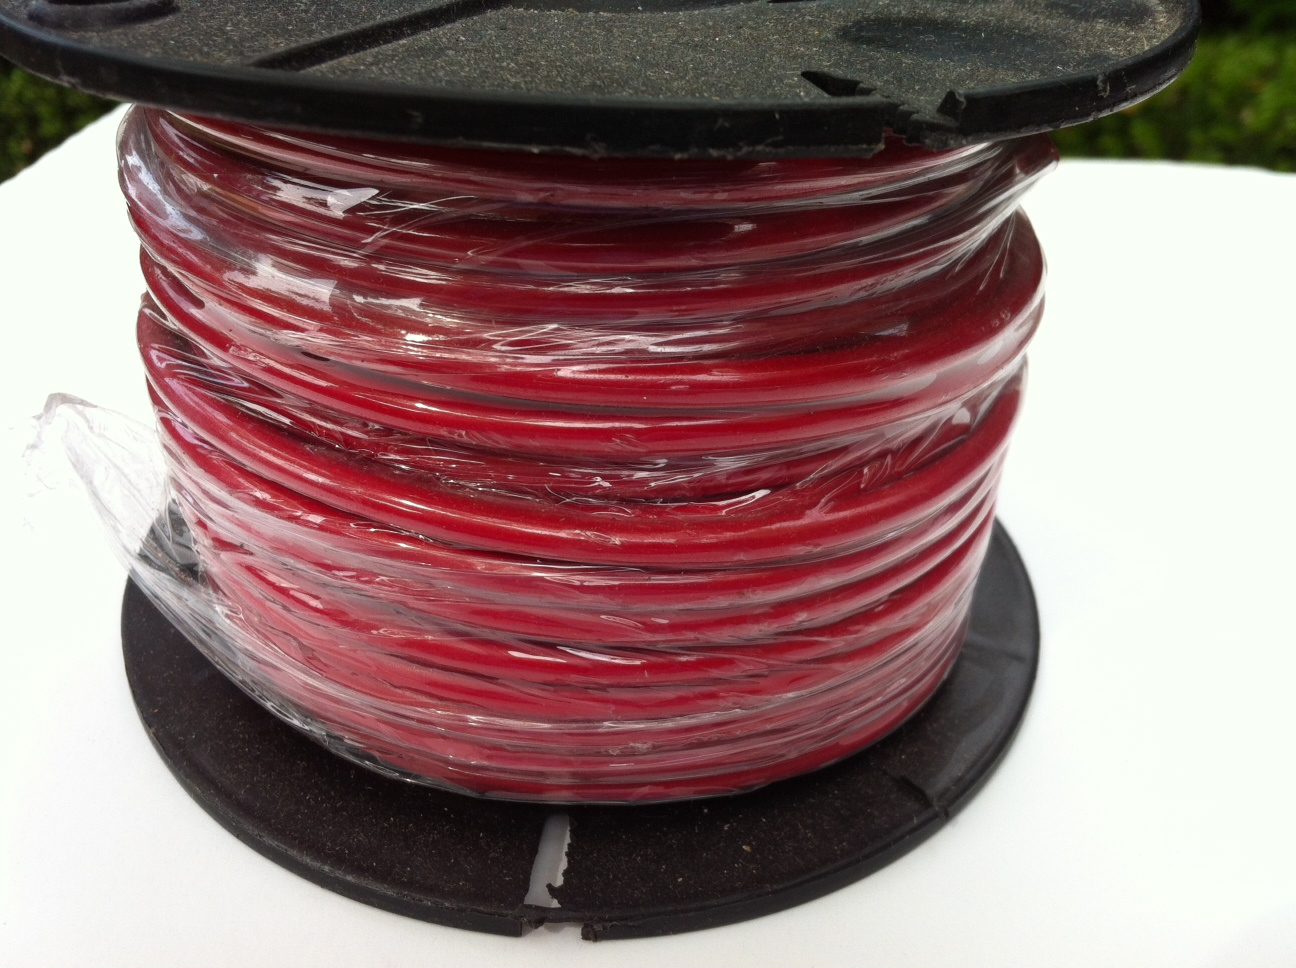 6mm red electrical wire 30M spool